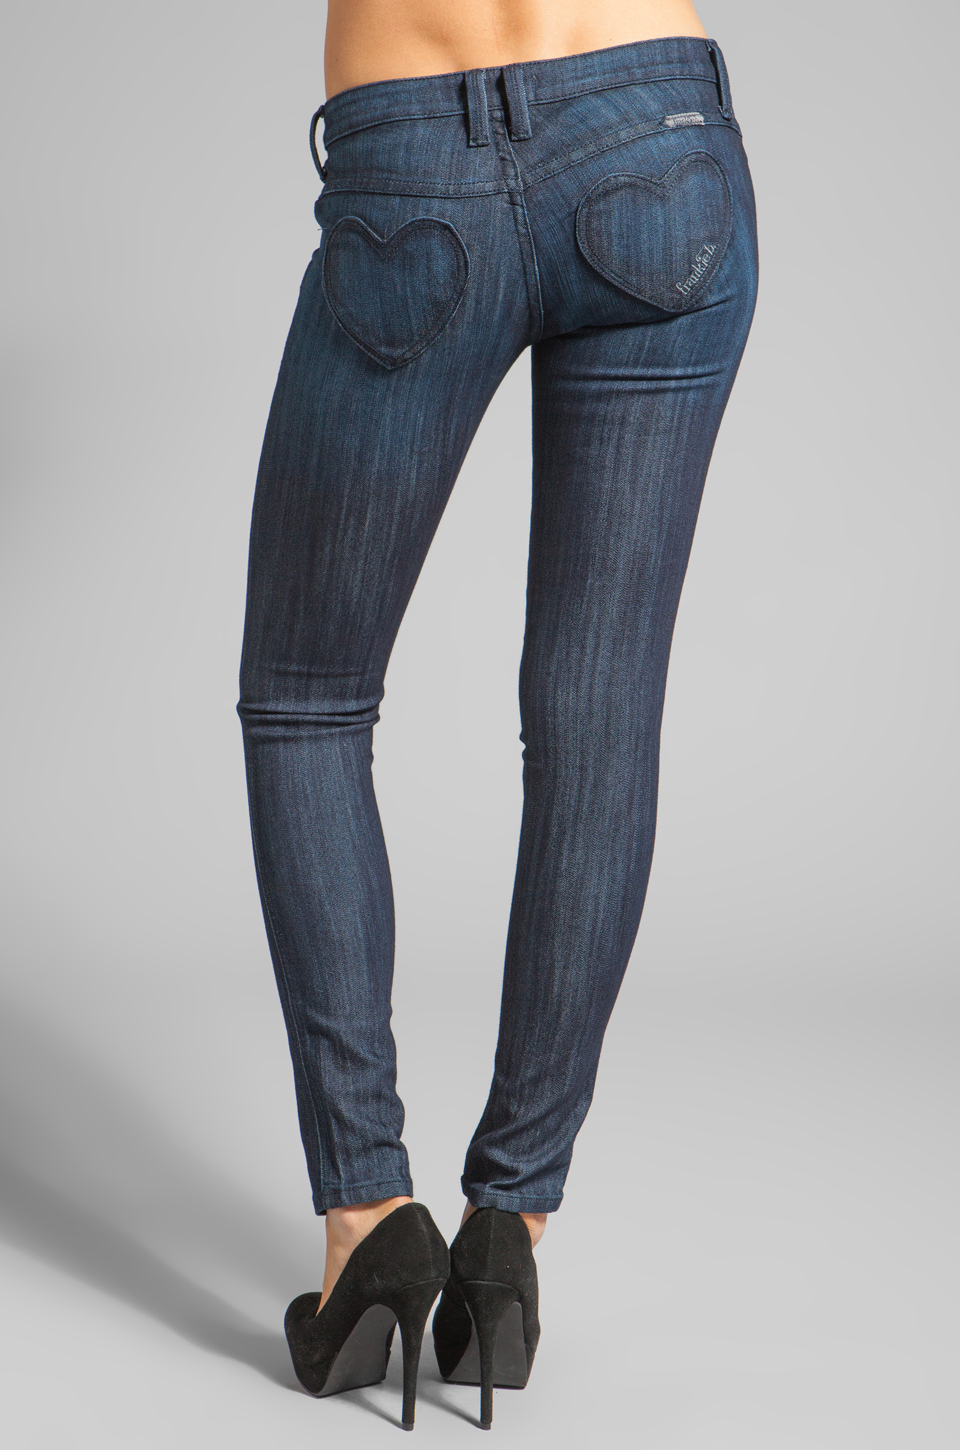 Frankie b. jeans Fb Mine Heart Pocket Skinny Jean in Blue | Lyst